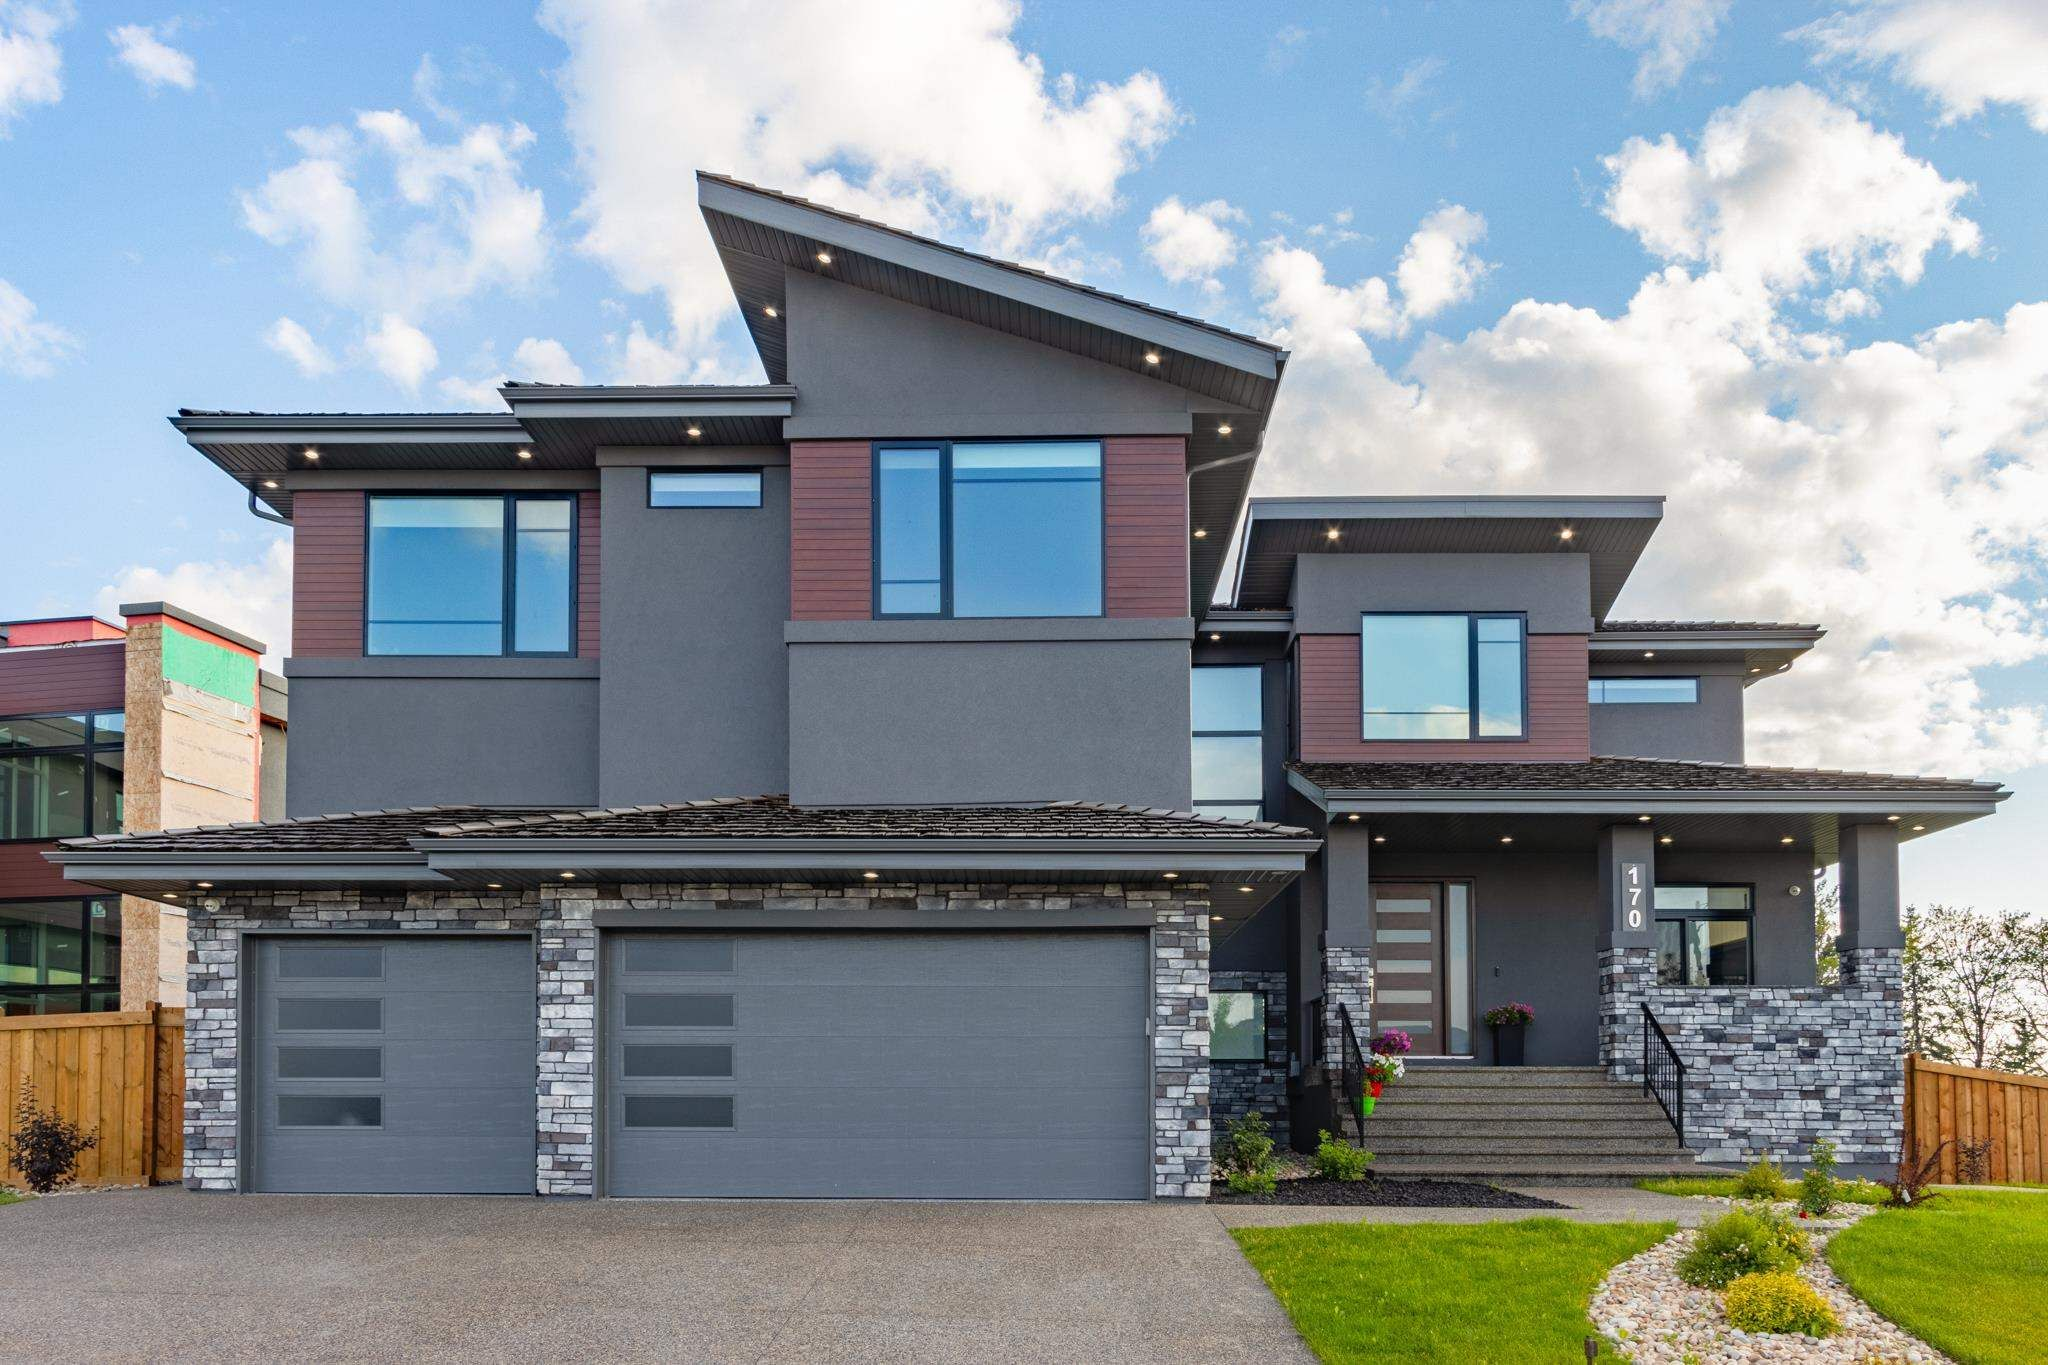 Main Photo: 170 52327 RGE RD 233: Rural Strathcona County House for sale : MLS®# E4255384